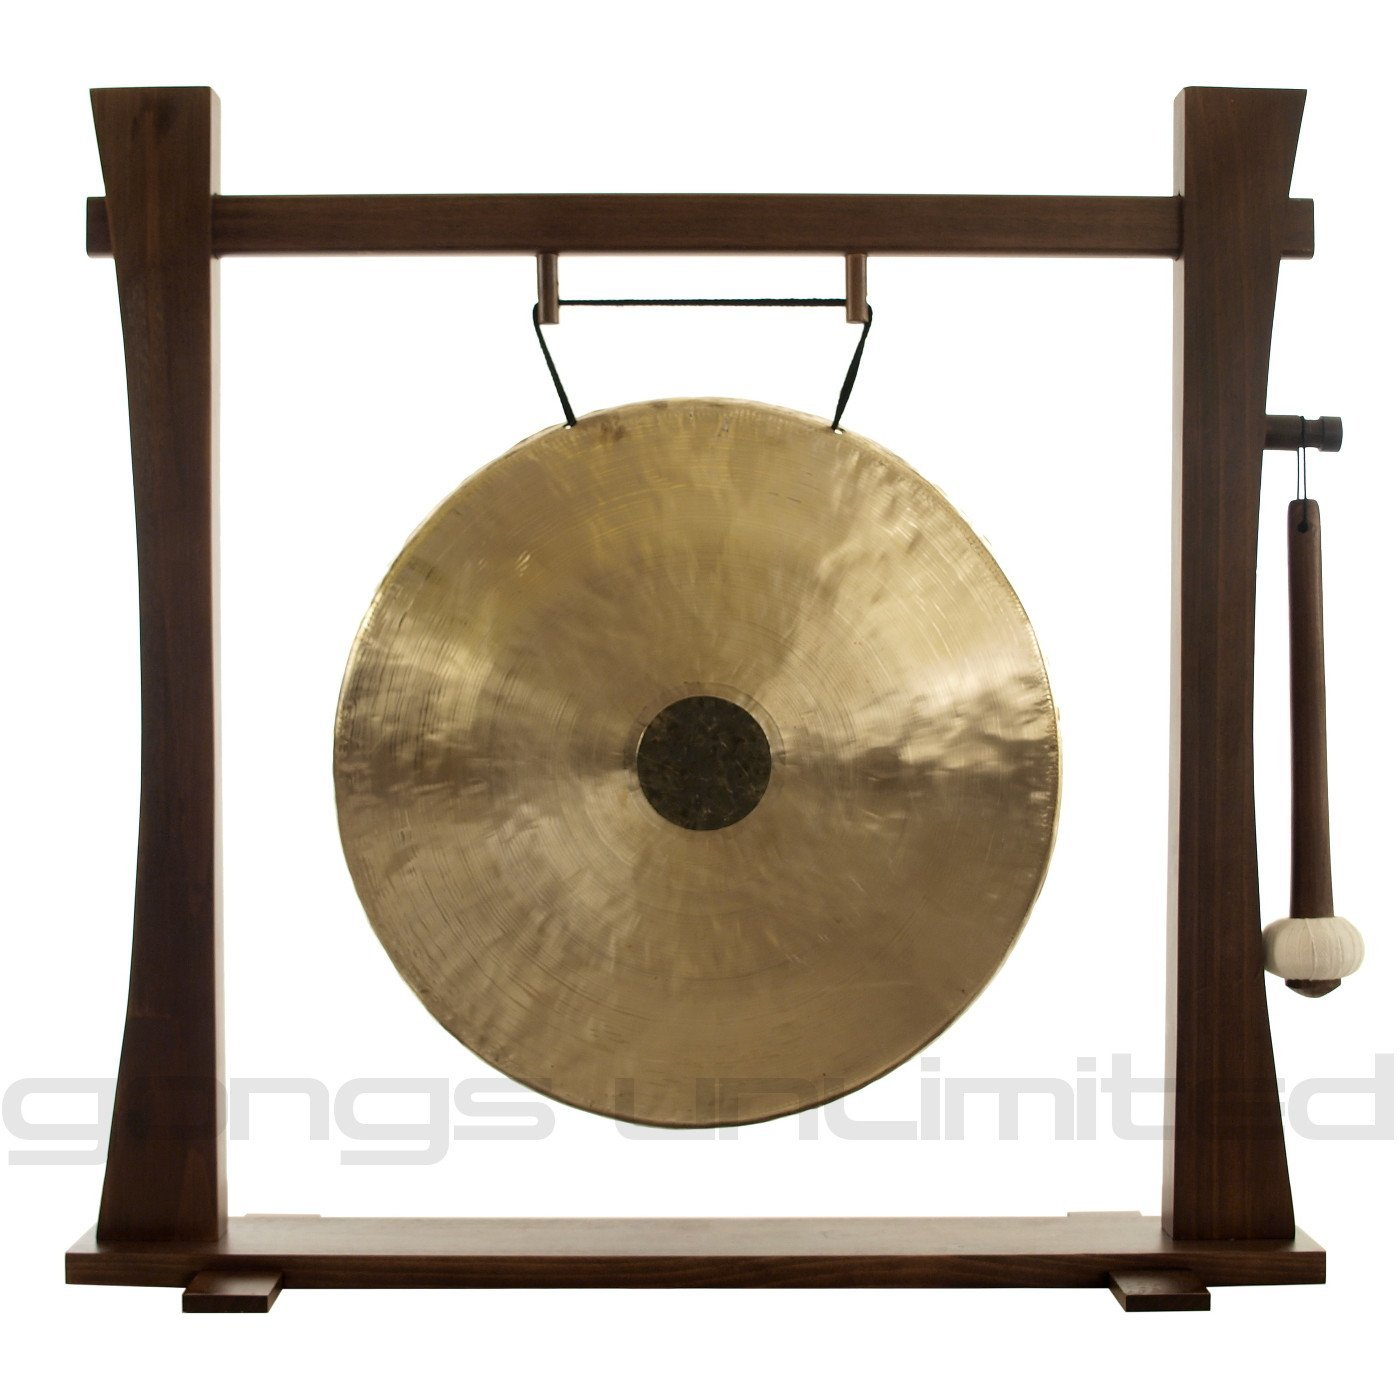 20'' to 22'' Gongs on the Spirit Guide Gong Stand